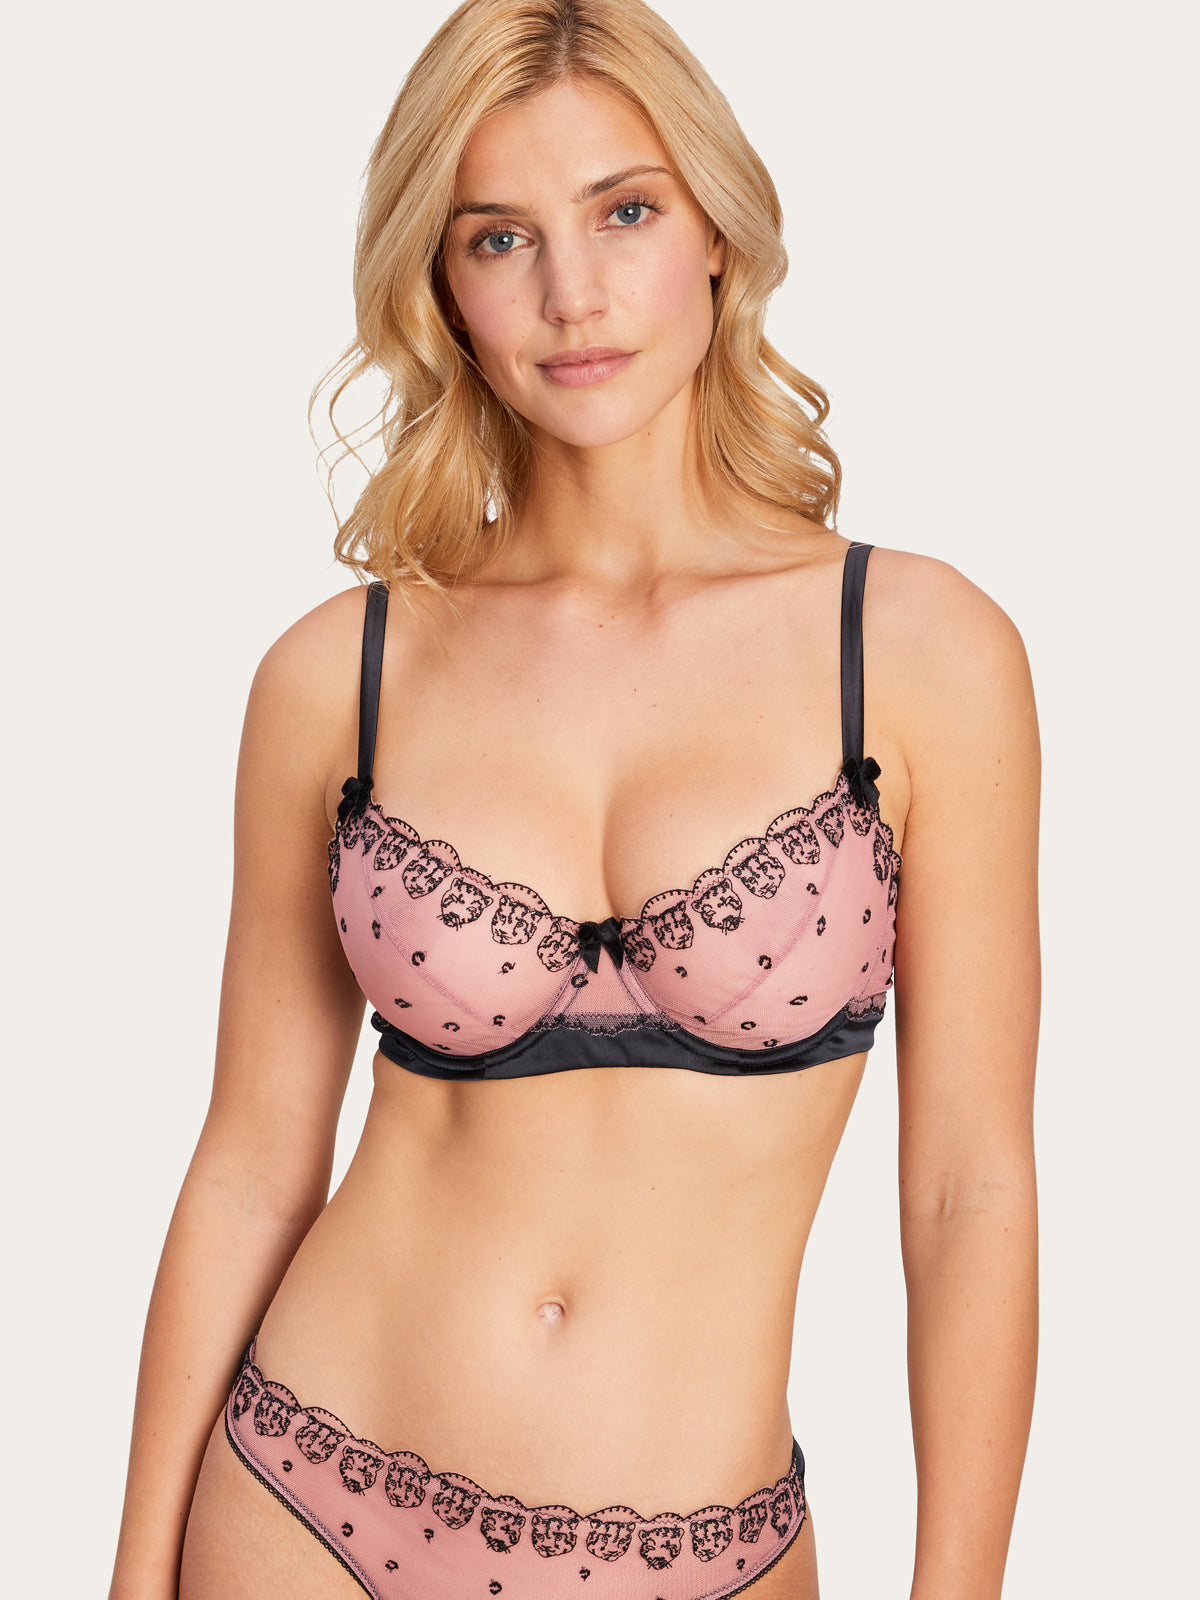 Matilda Bra in Dusty Rose By Morgan Lane